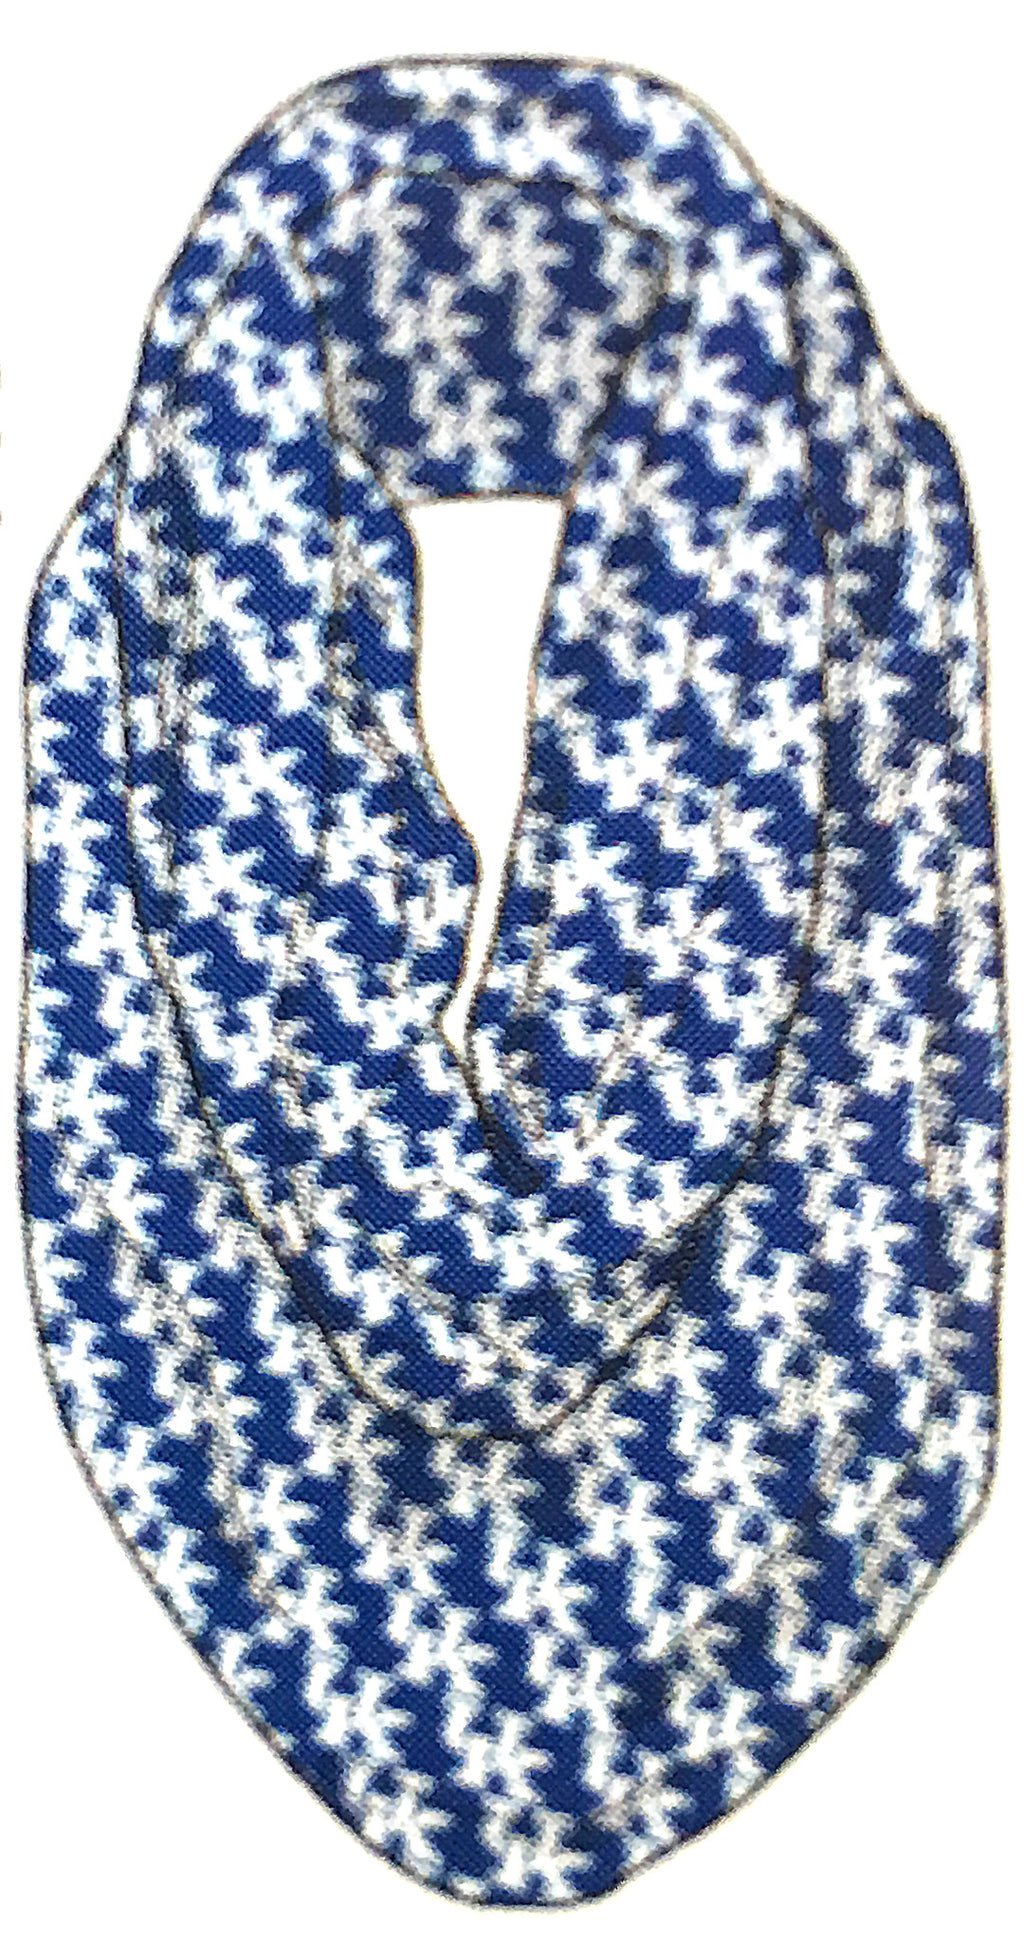 UK Knit Infinity Scarf